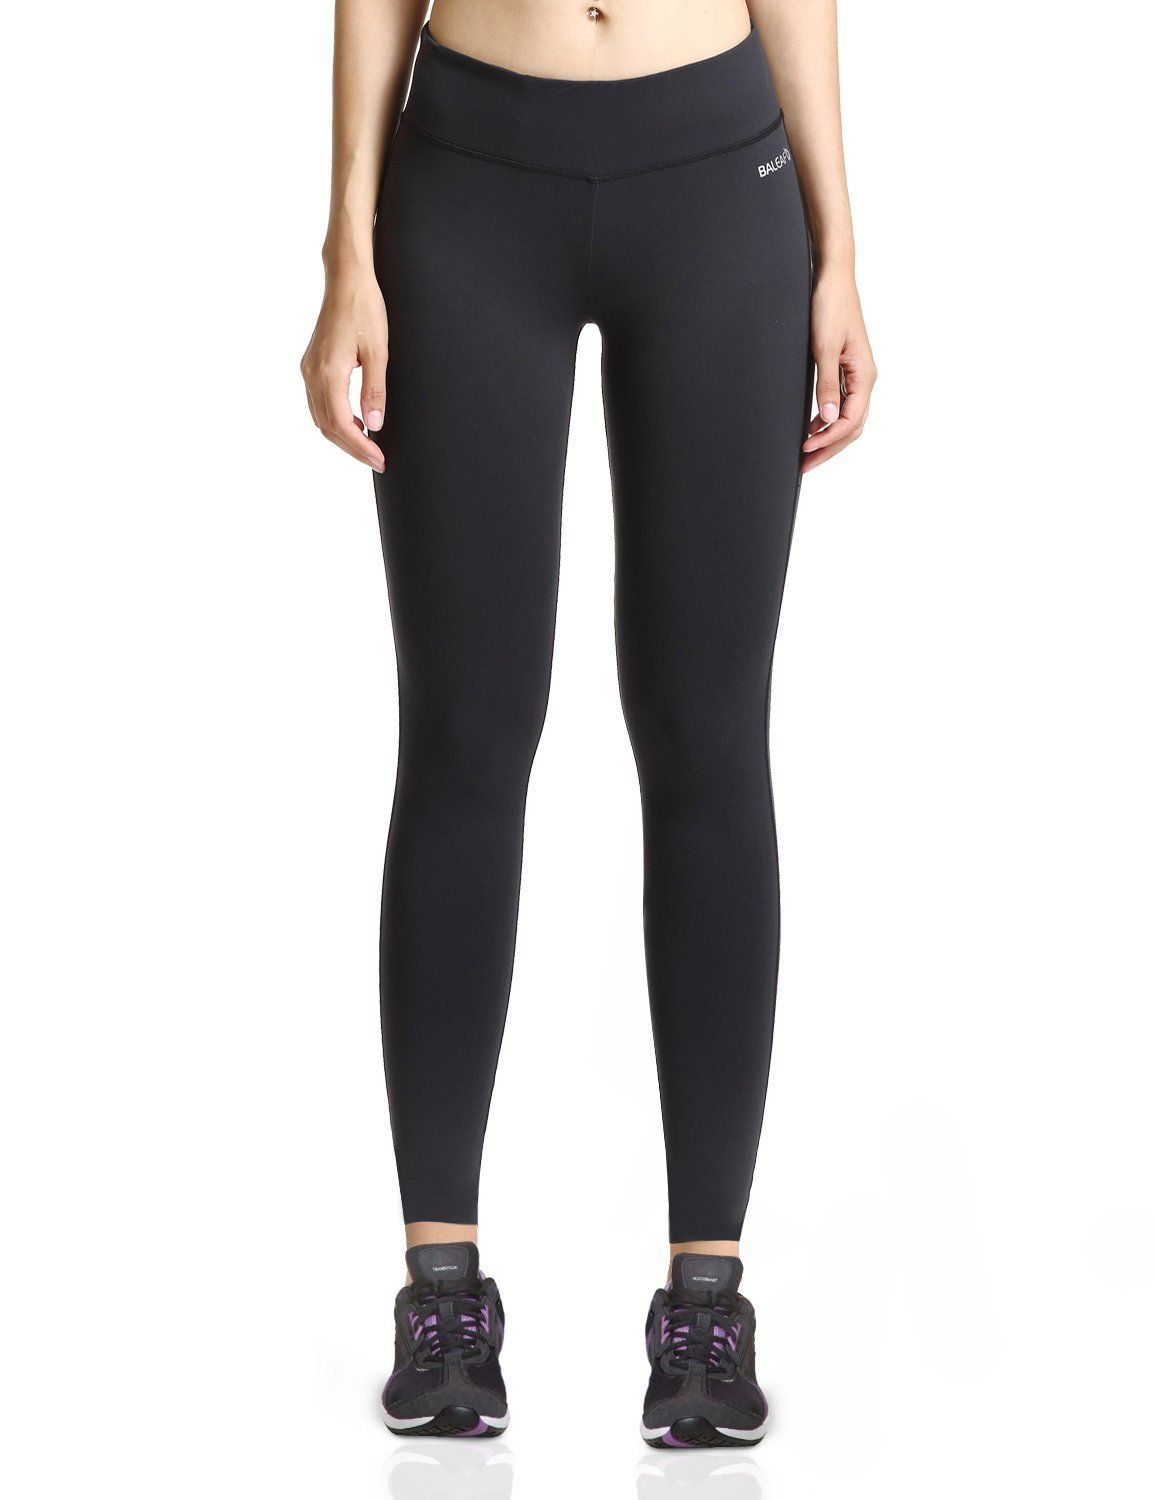 57984bc25d721 These Leggings Have More Than 3,000 Five-Star Reviews on Amazon - Baleaf  Women's Ankle Legging from InStyle.com